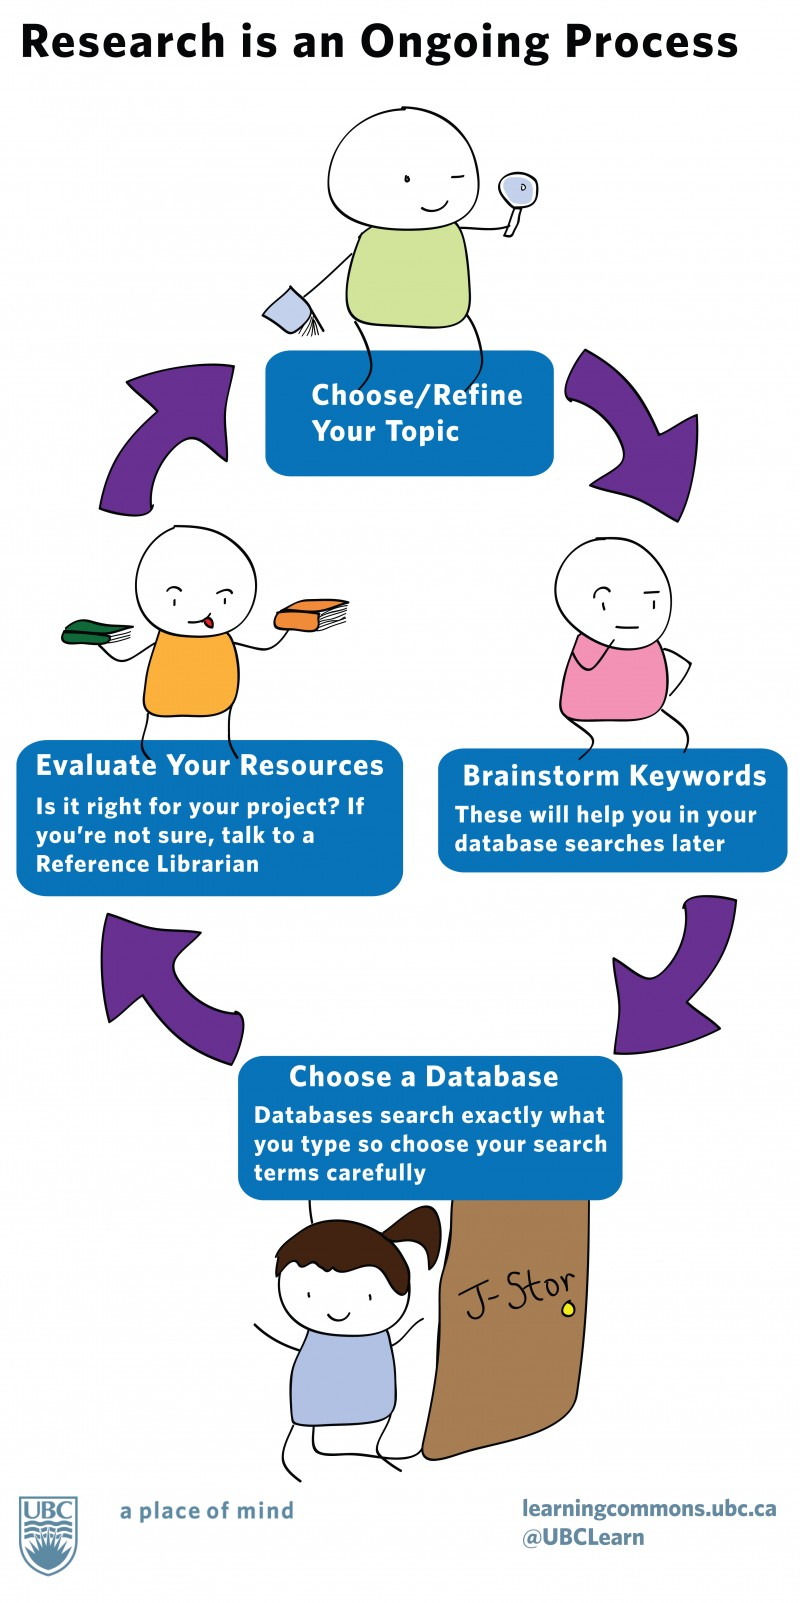 Research is an ongoing project. Choose Refine your topic, pick keywords, pick a database, evaluate what you find, repeat